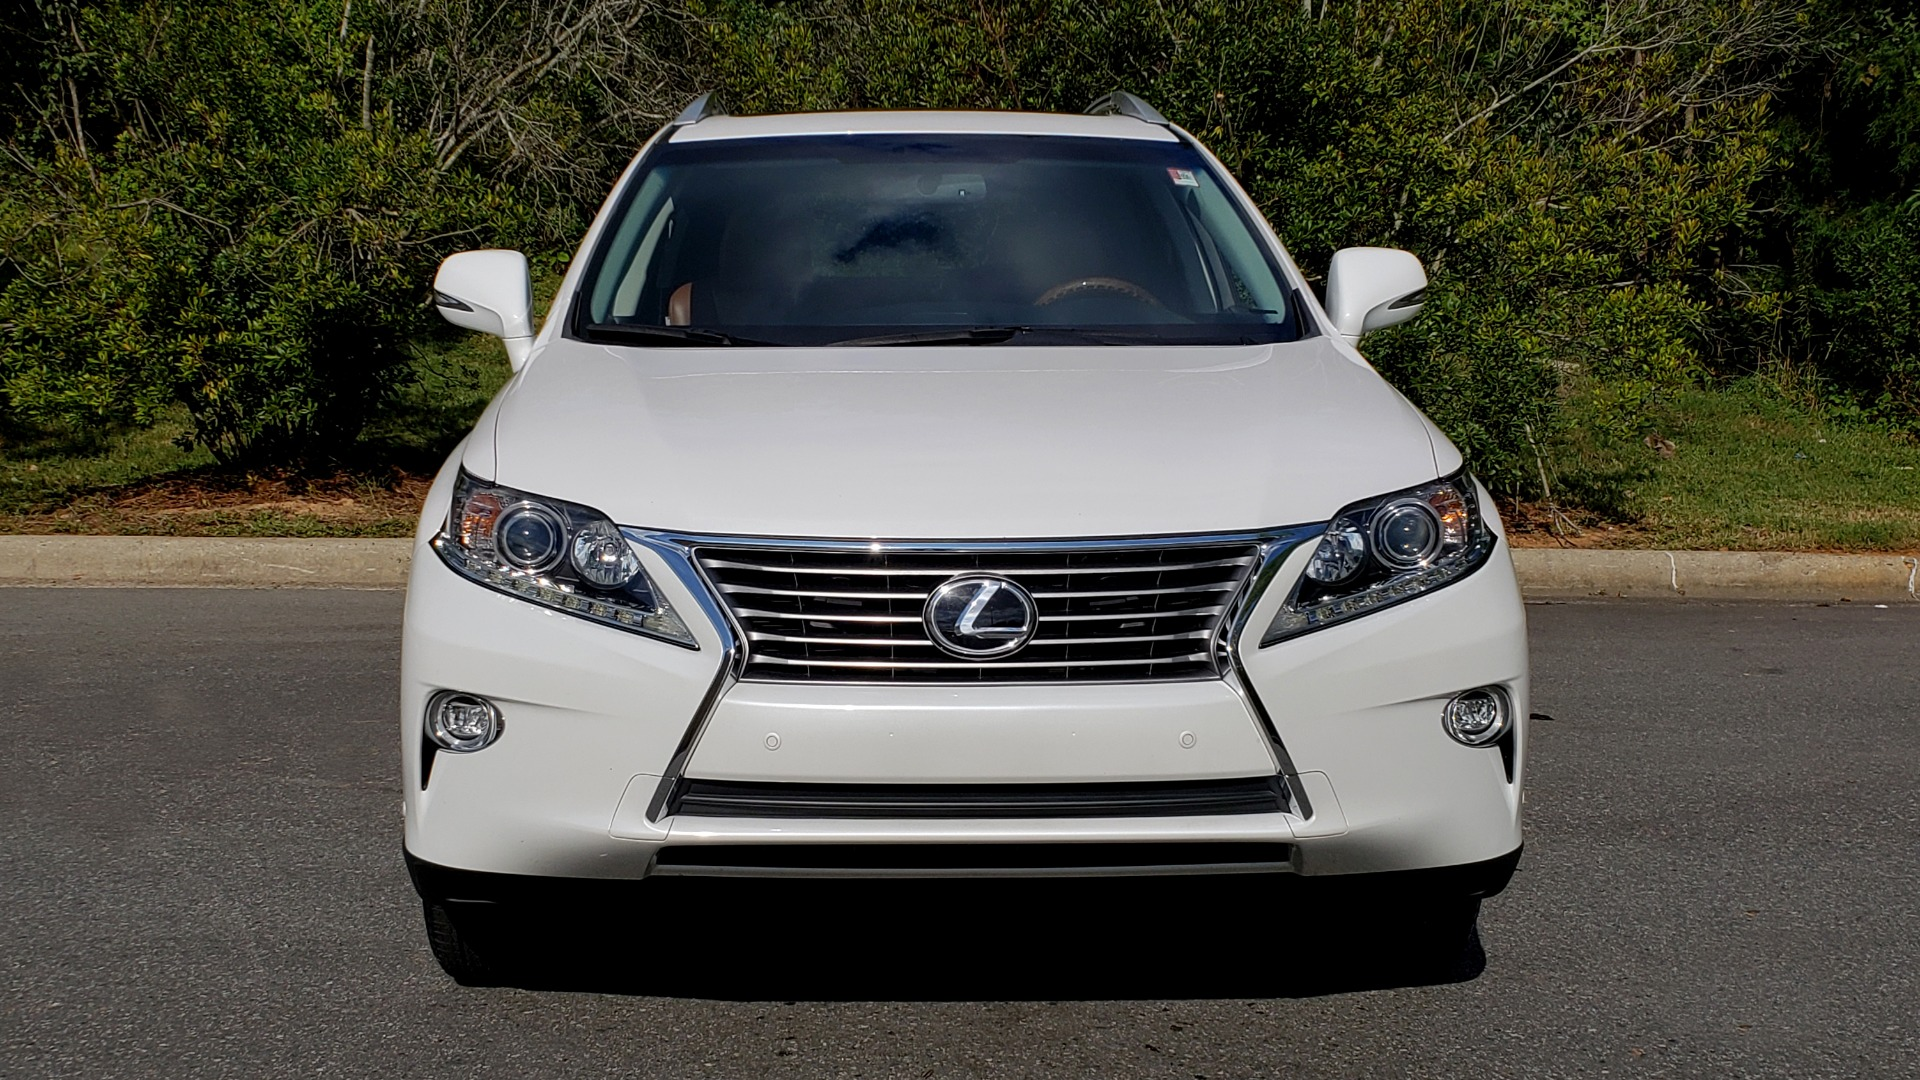 Used 2015 Lexus RX 350 PREMIUM PKG / COMFORT PKG / NAV / SUNROOF / BSM / TOWING for sale Sold at Formula Imports in Charlotte NC 28227 18